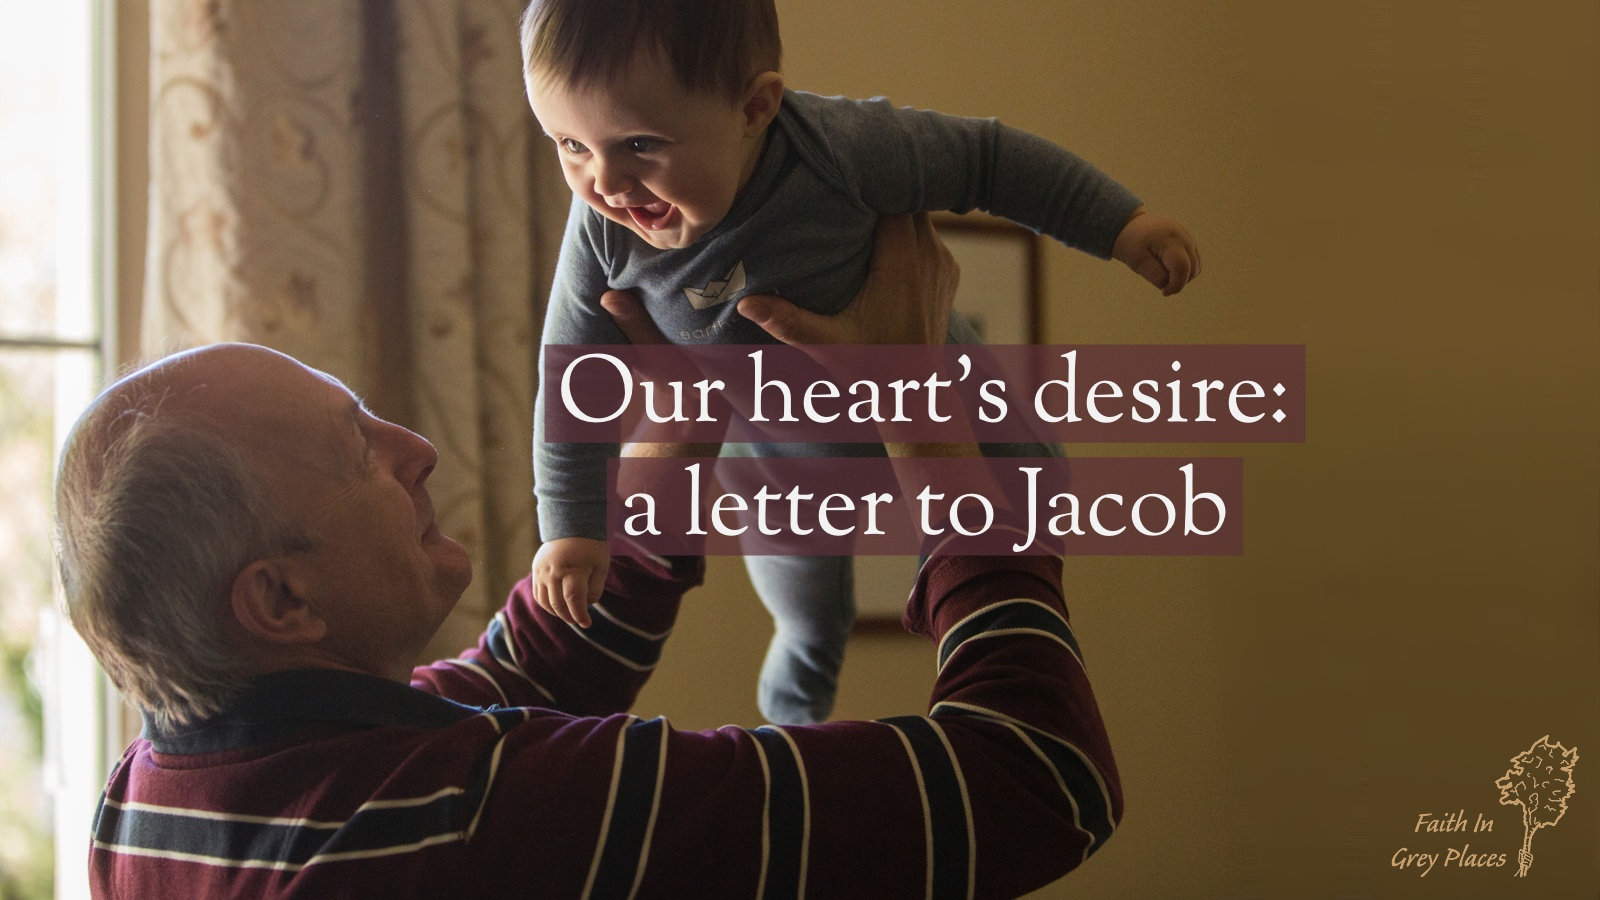 An old man holds up a baby boy in his arms and the baby is smiling with delight. Text over the top: Our heart's desire: a letter to Jacob. Faith in Grey Places